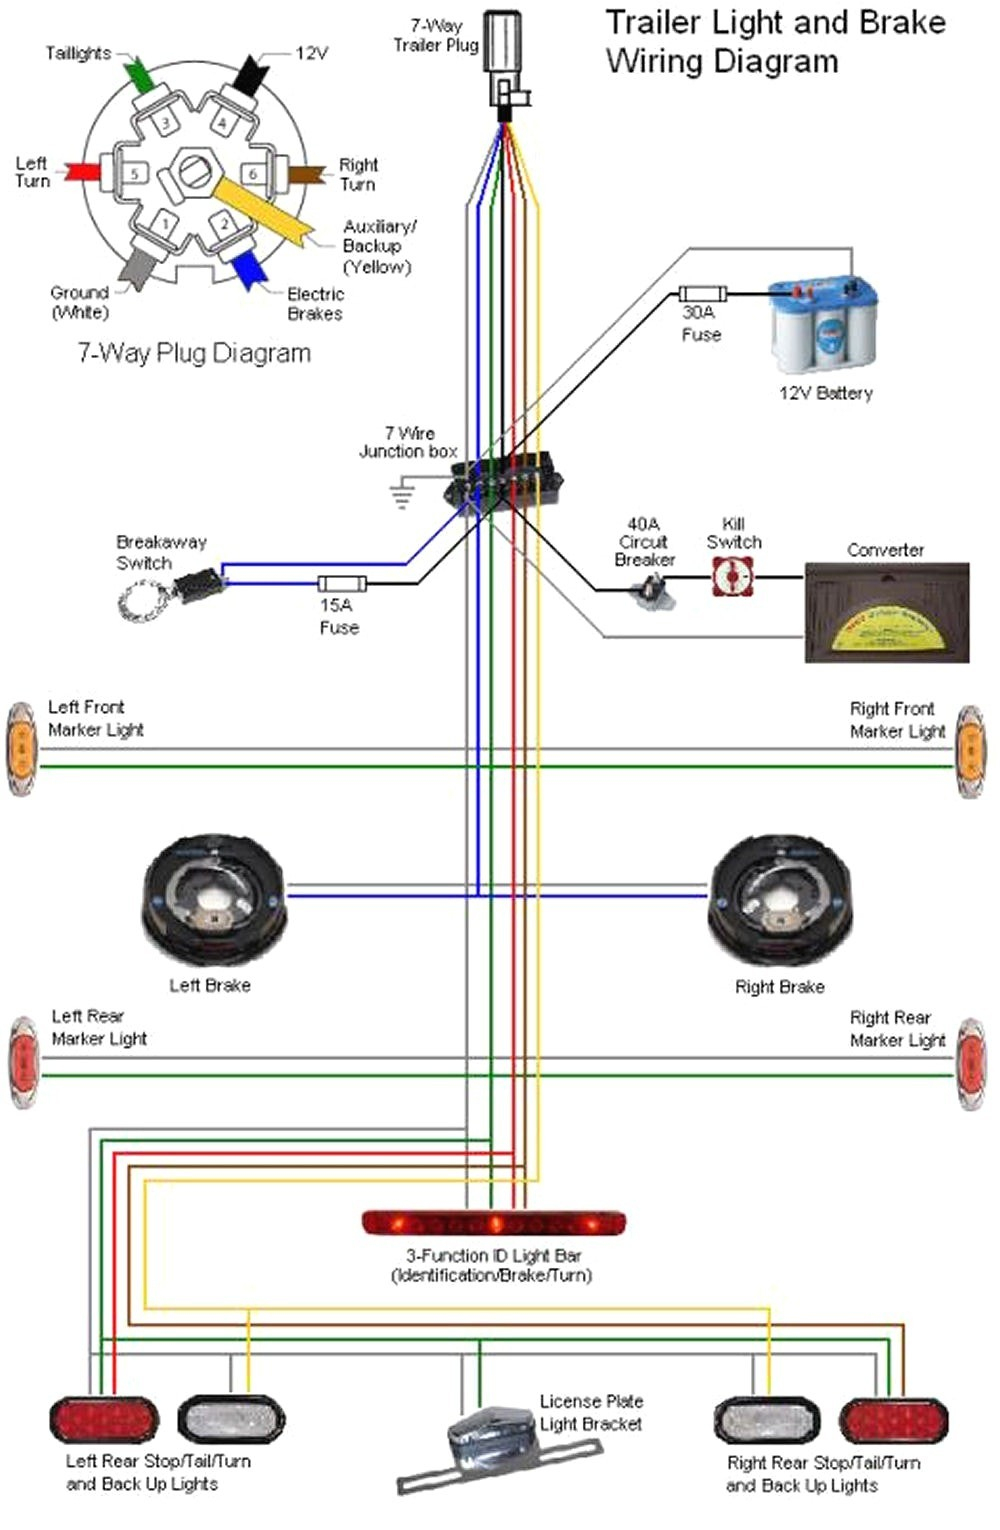 trailer plug wiring diagram 7 way round | Trailer Wiring Diagram on 7 way trailer hitch wiring diagram, 7-wire rv plug diagram, 7 way trailer plug ford, phillips 7-way wiring diagram, 4 way trailer wiring diagram, 7-way connector wiring diagram, 7 pronge trailer connector diagram, horse trailer wiring diagram, 7-way blade wiring diagram, 7-way trailer light diagram, 7 way trailer plug cover, trailer light plug diagram, chevy 7-way trailer wiring diagram, seven way trailer wiring diagram, seven wire trailer wiring diagram, 7 way trailer plug dimensions, 7 way trailer plug installation, seven way trailer plug diagram, ford trailer brake controller wiring diagram,